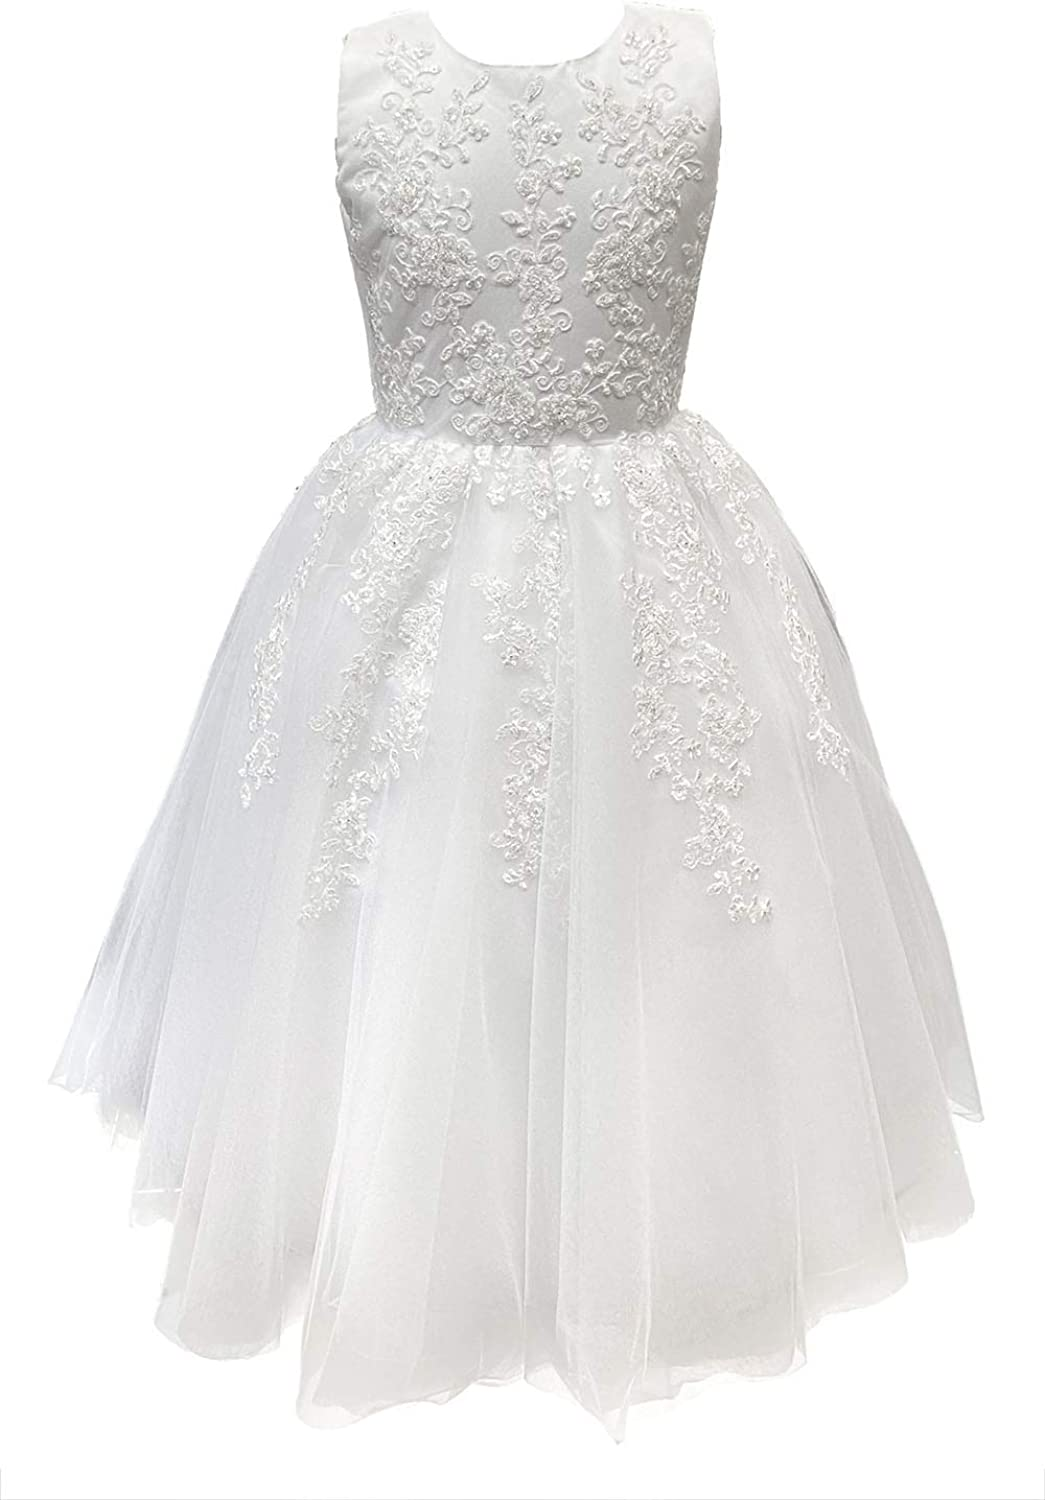 Joan Calabrese 1st First Communion Dresses for Girls 7-16 Mid Calf Teens Tea Length White